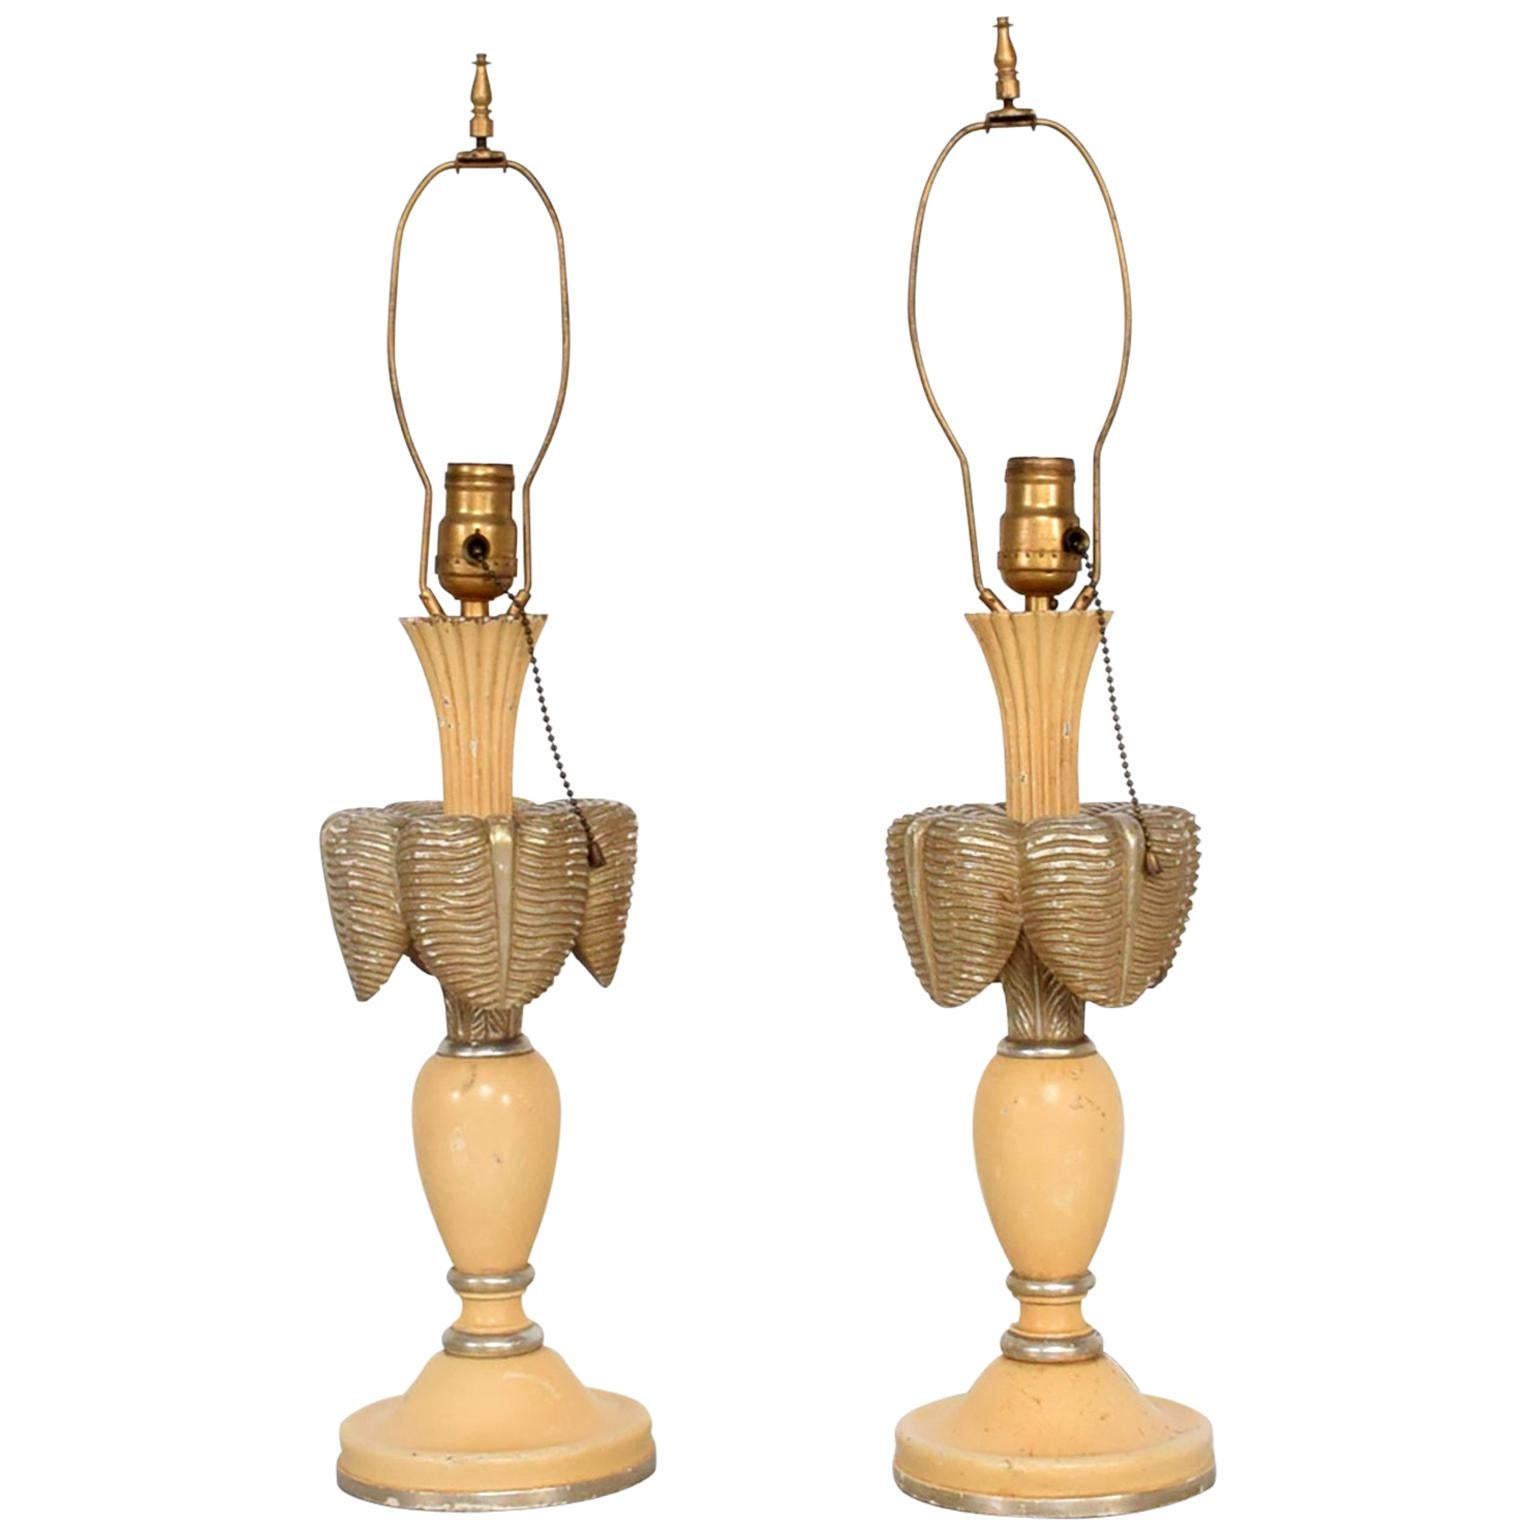 French Art Deco Painted Mahogany Dainty Table Lamps 1940s - a pair